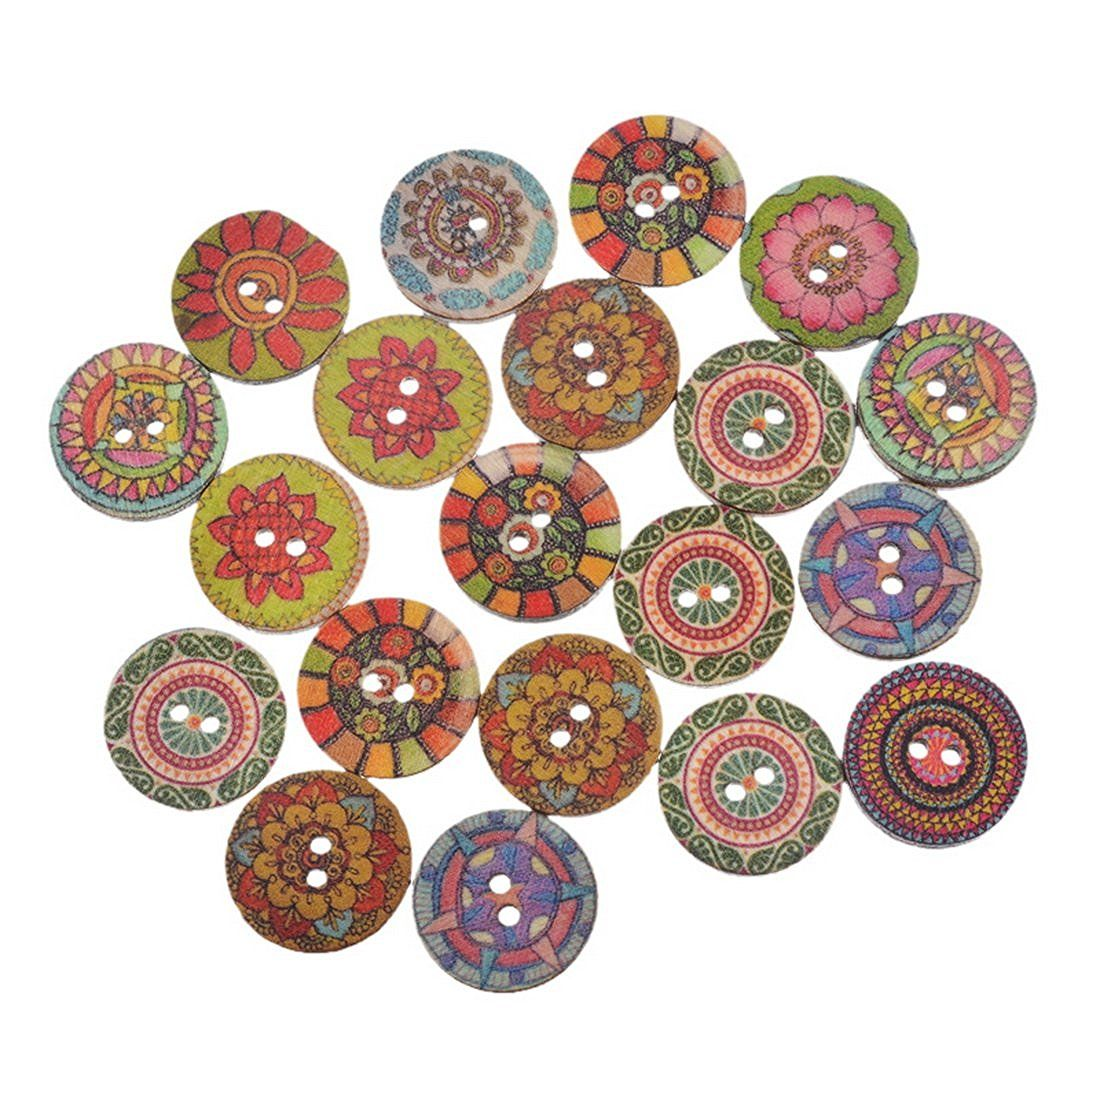 Arts,crafts & Sewing Learned 50pcs Mix Color Flatback Satin Fabric Covered Heart Buttons Home Garden Crafts Cabochon Scrapbooking Diy 17mm Ideal Gift For All Occasions